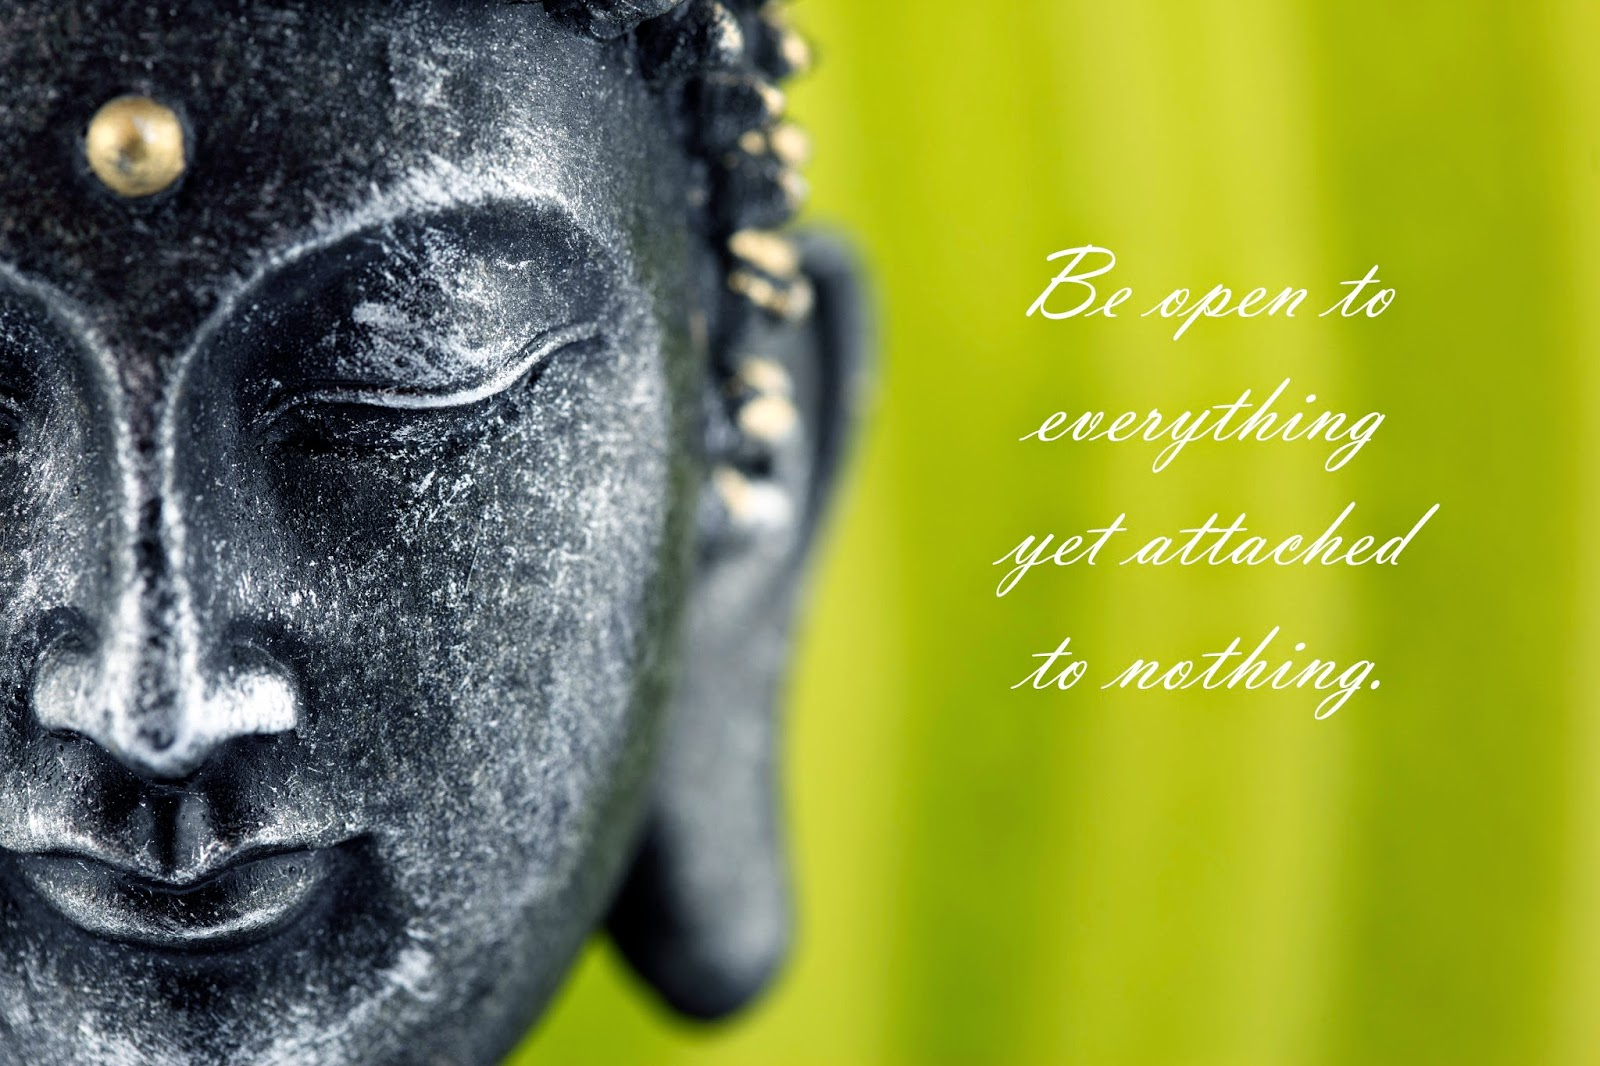 Top 51 Beautiful Buddha Quotes